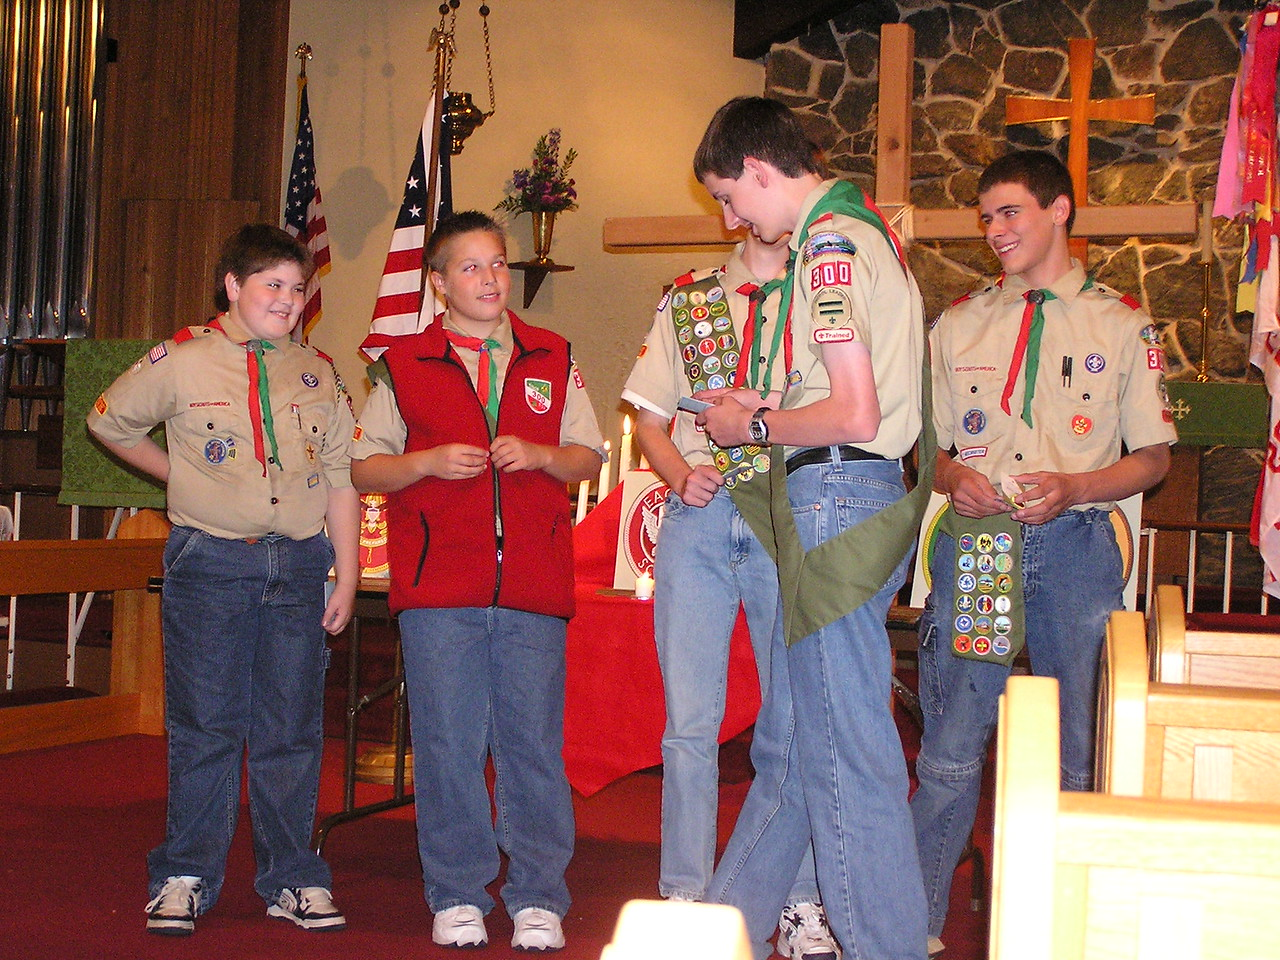 03-09-08 Kevin, Scouts 010